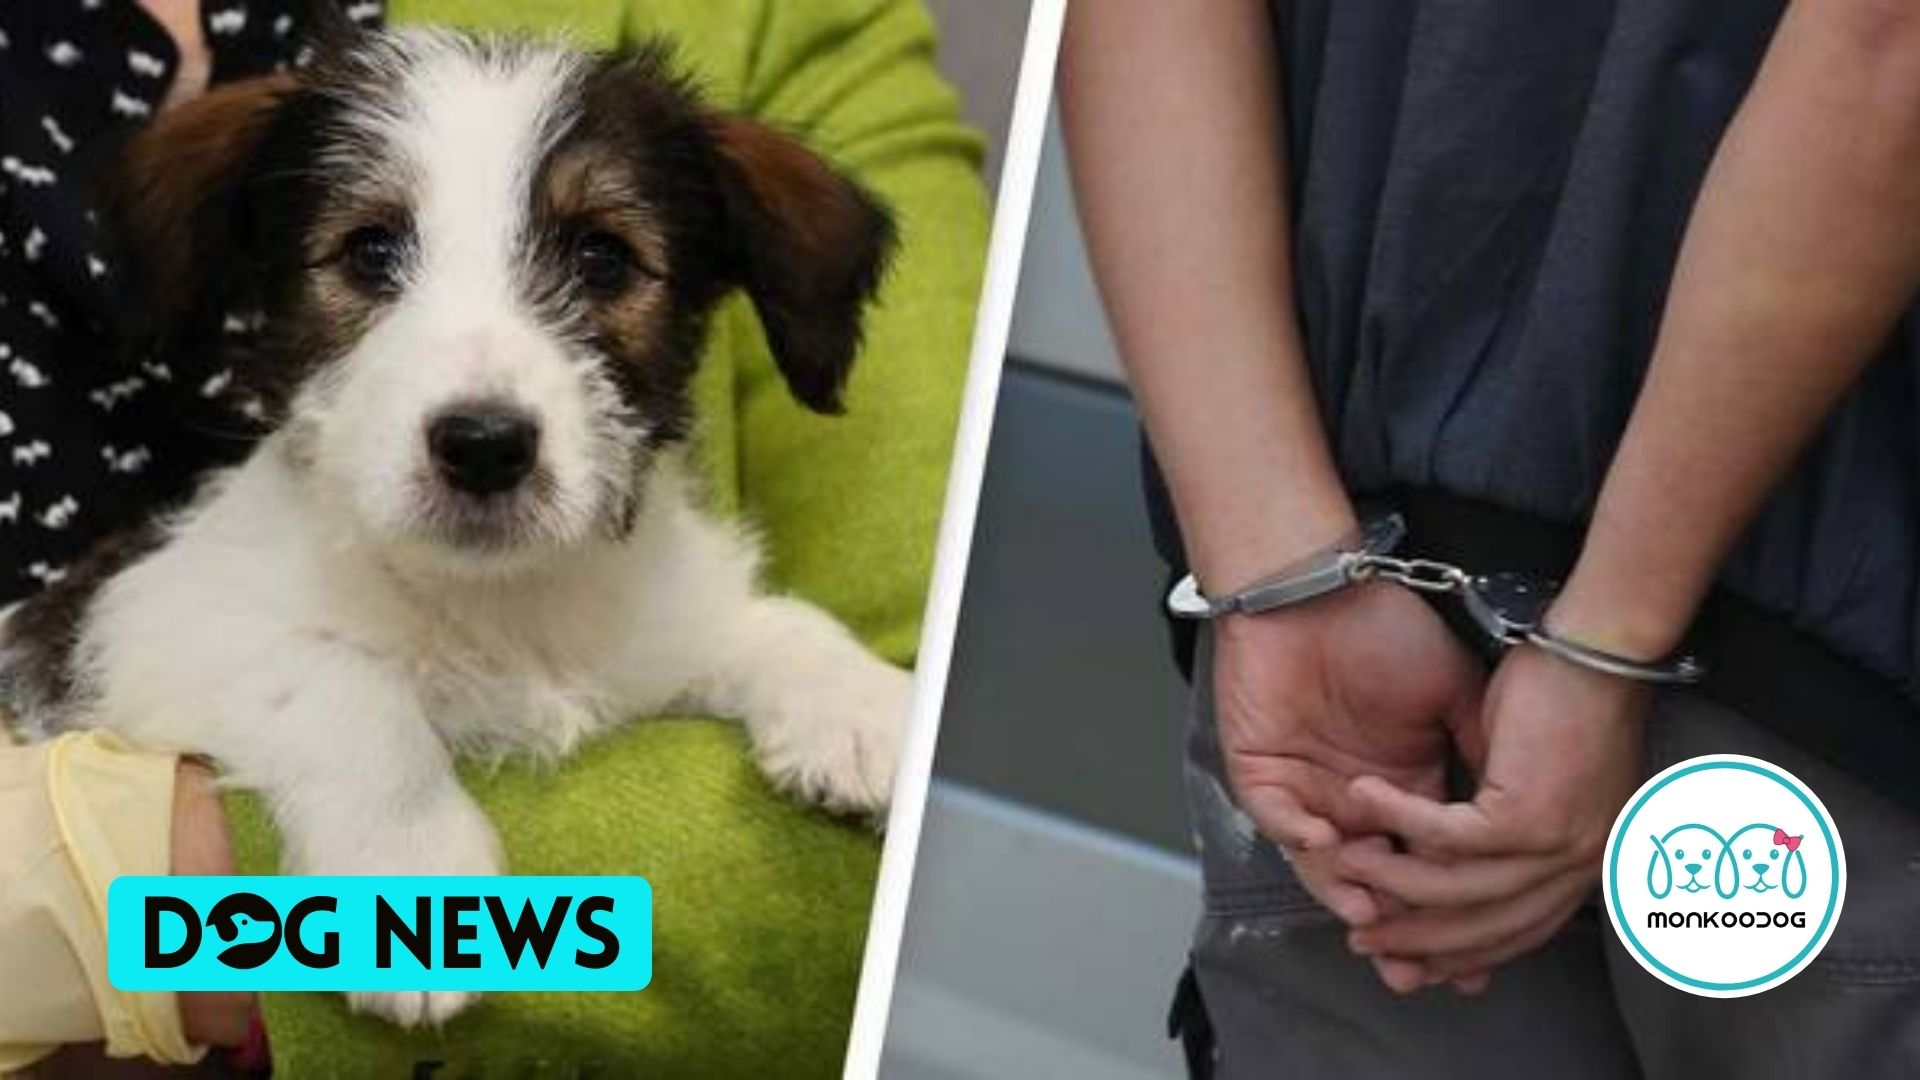 Dognappers face lengthy prison terms under laws to Protect Dogs, after incidents almost TRIPLE during Covid lockdown.